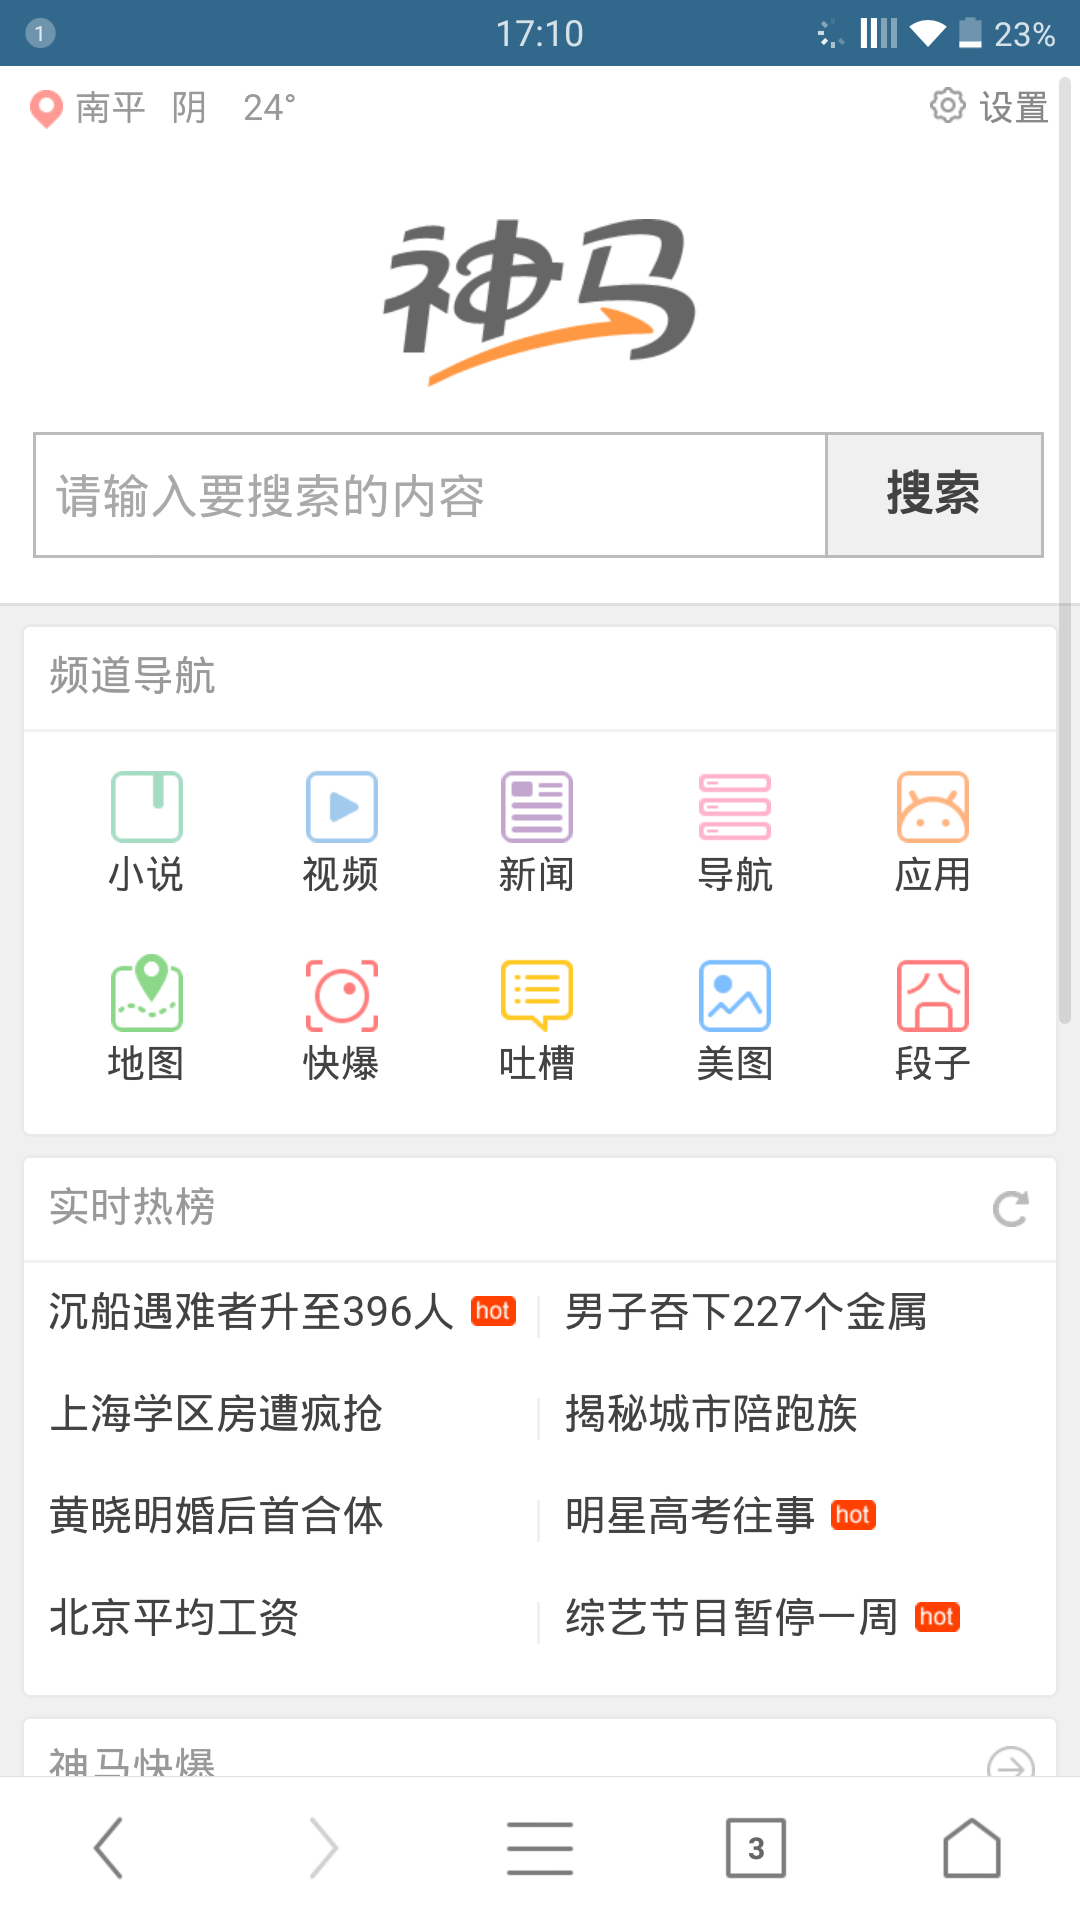 Screenshot_2015-06-06-17-10-03.png